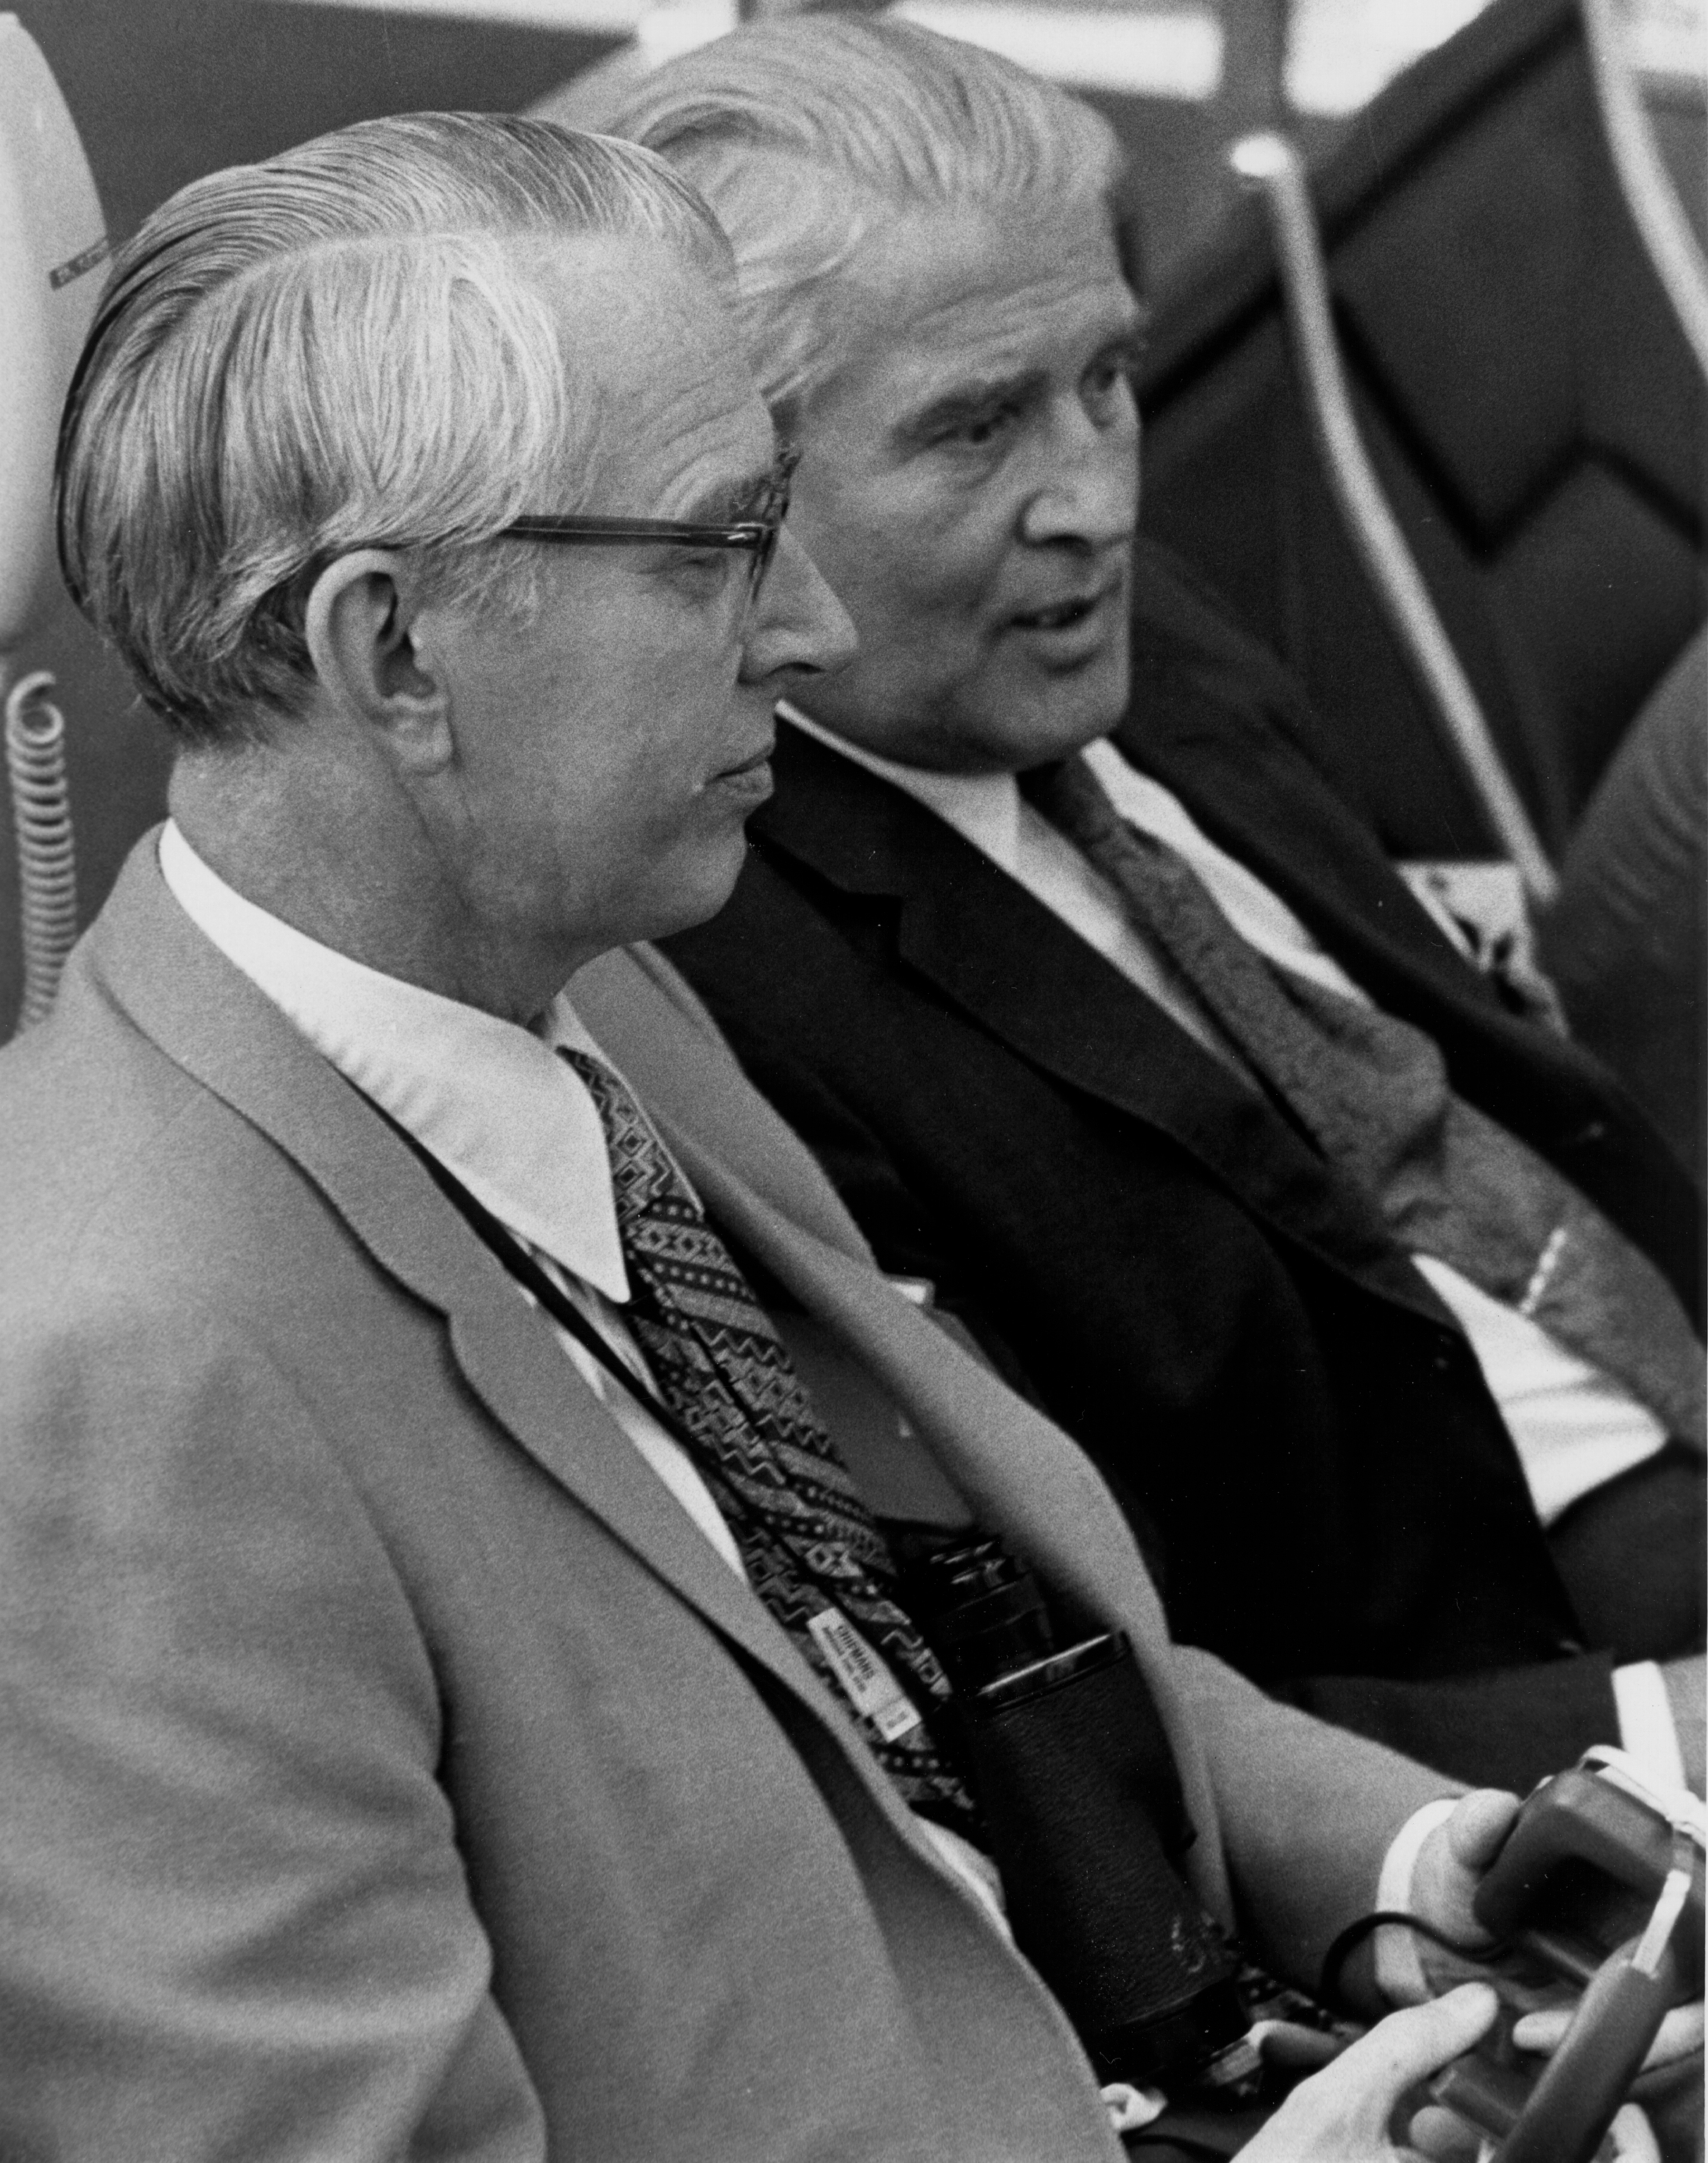 Fletcher_and_von_Braun_at_Apollo_15_launch_-_GPN-2000-001620.jpg